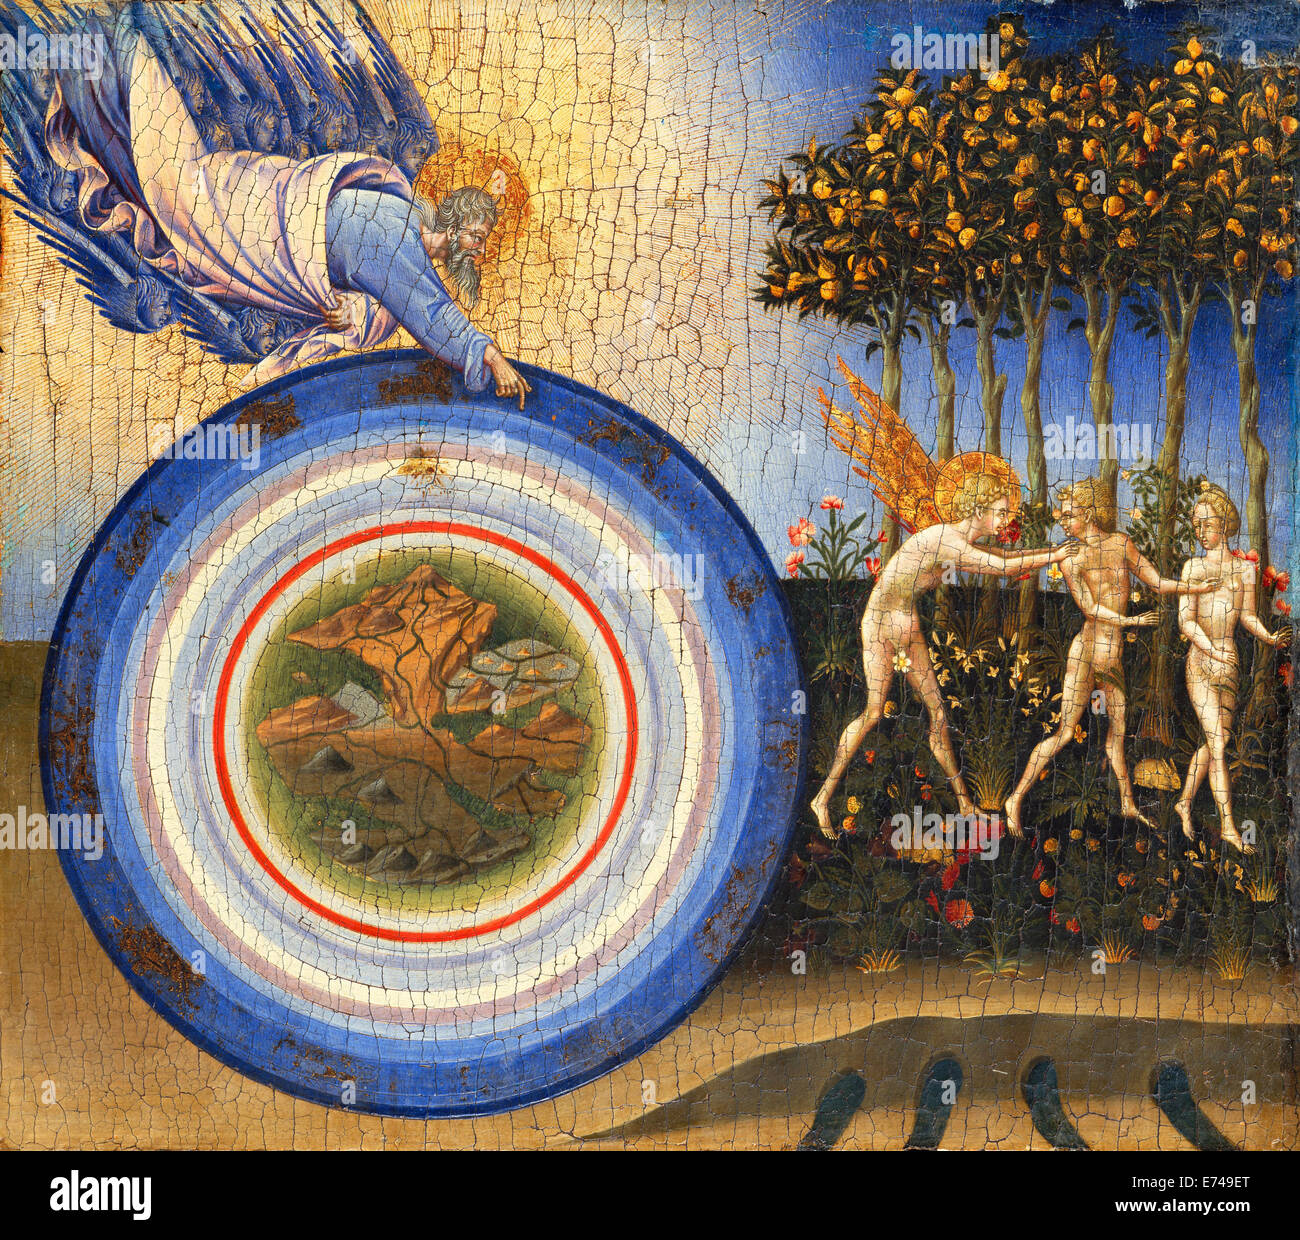 The Creation of the World and the Expulsion from Paradise - by Giovanni di Paolo, 1445 - Stock Image